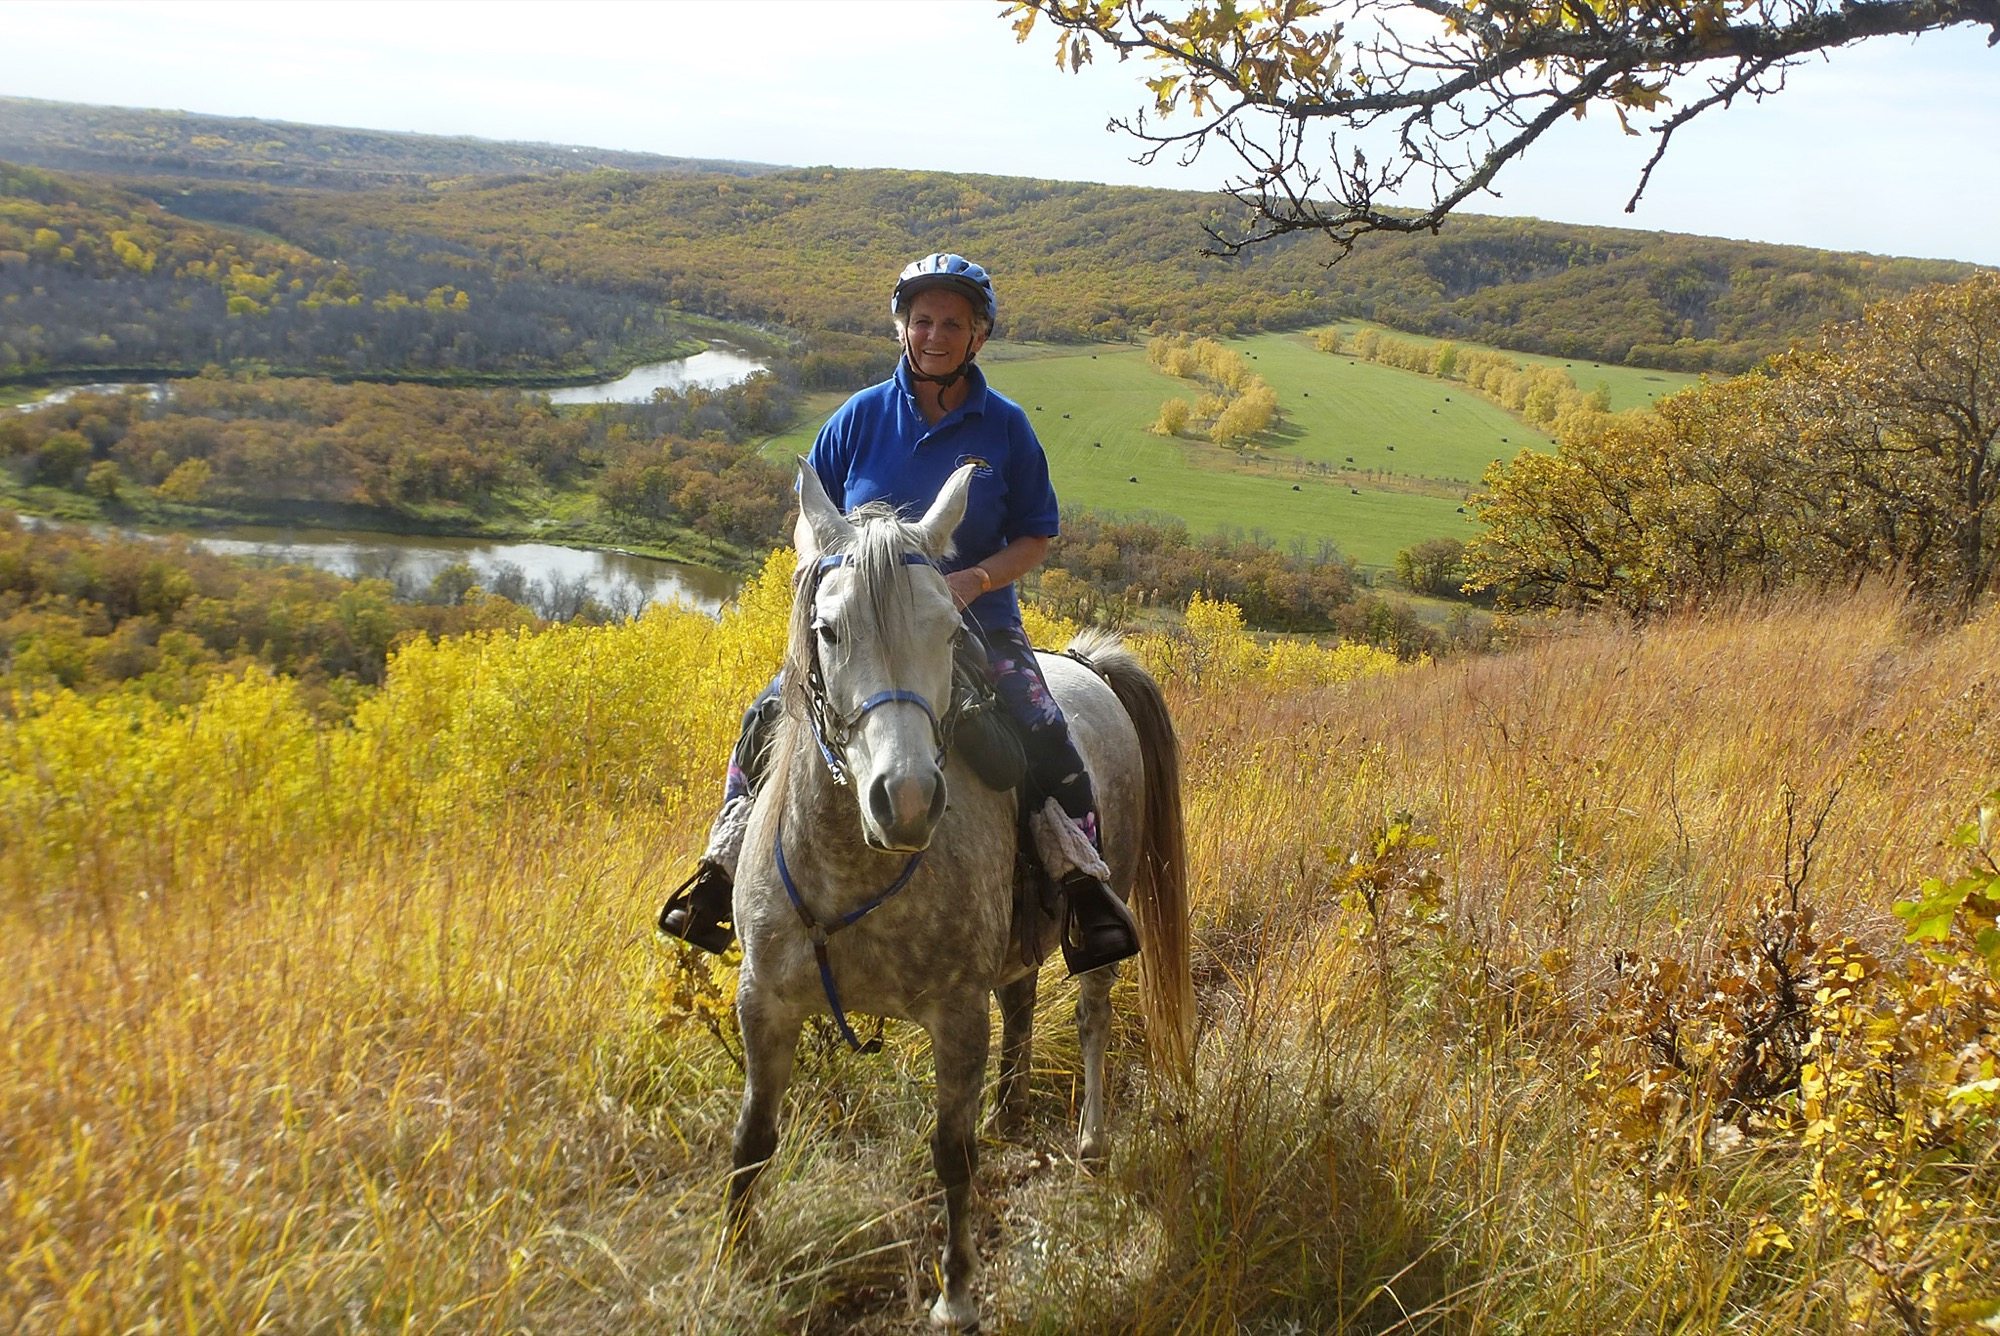 Myna Margetts is seen enjoying the Souris Bend Wildlife Management Area's equestrian trails in this undated photo.